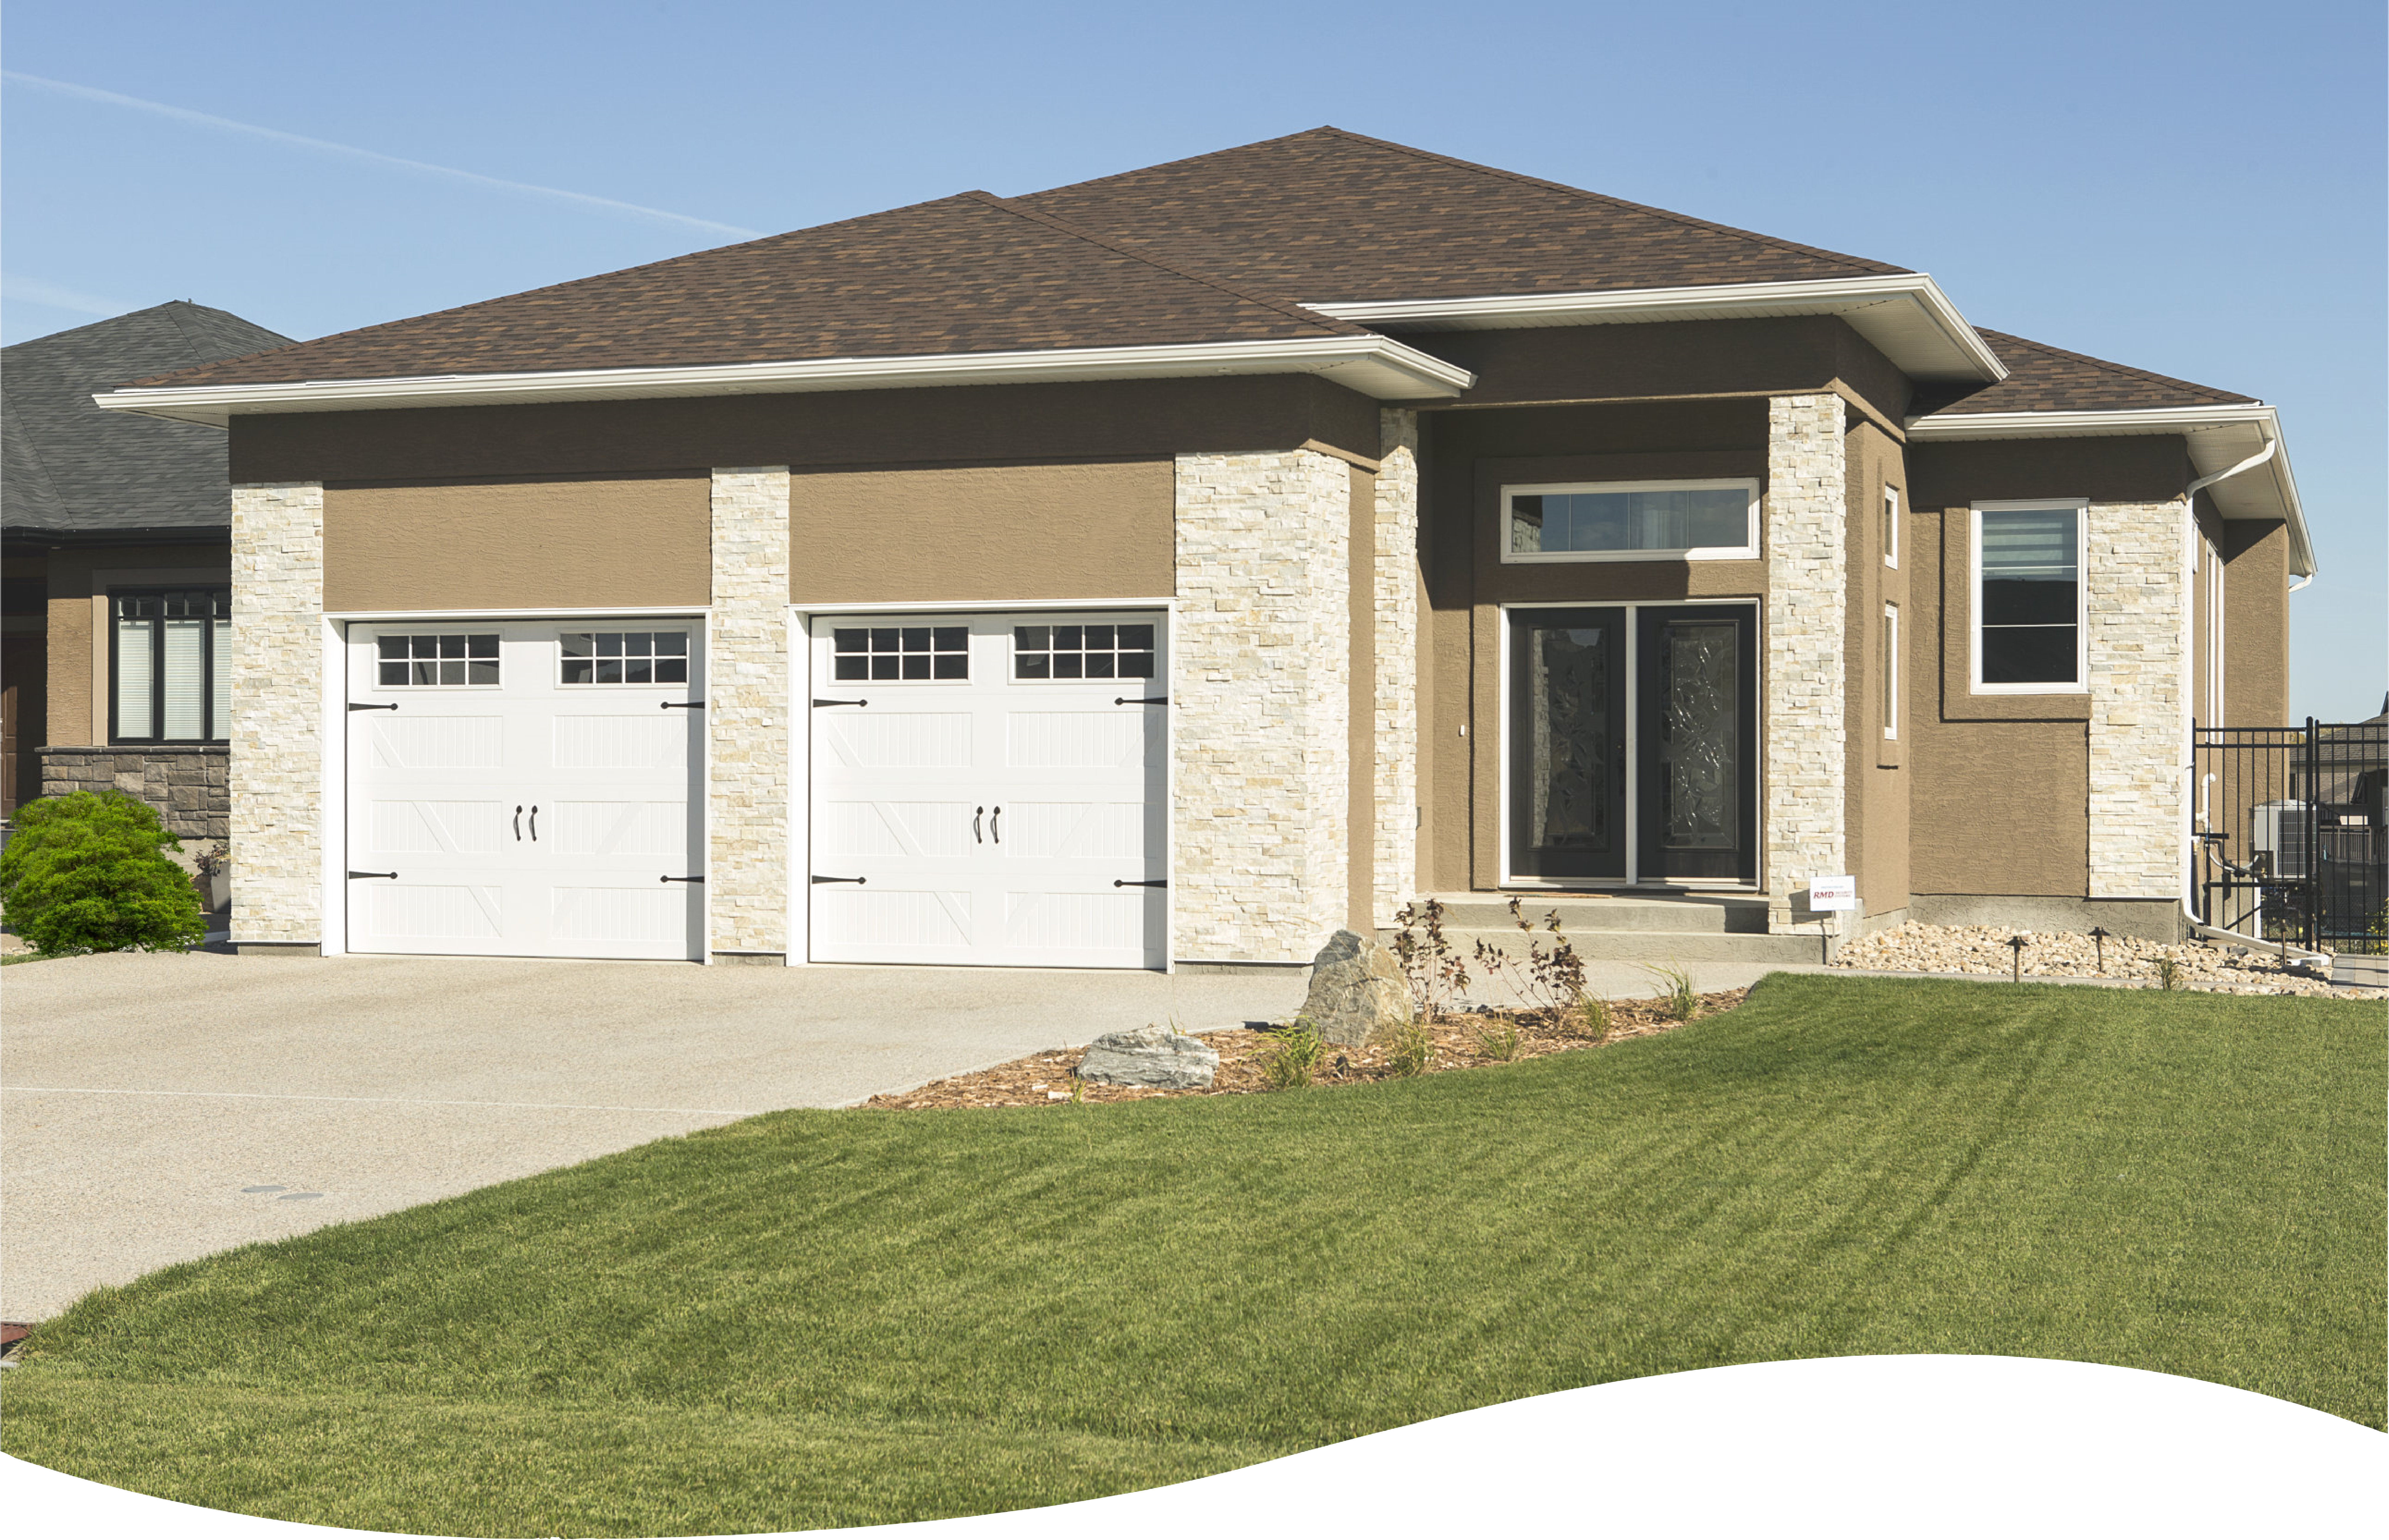 the choice is yours with emerald park homes, custom home builder in Regina